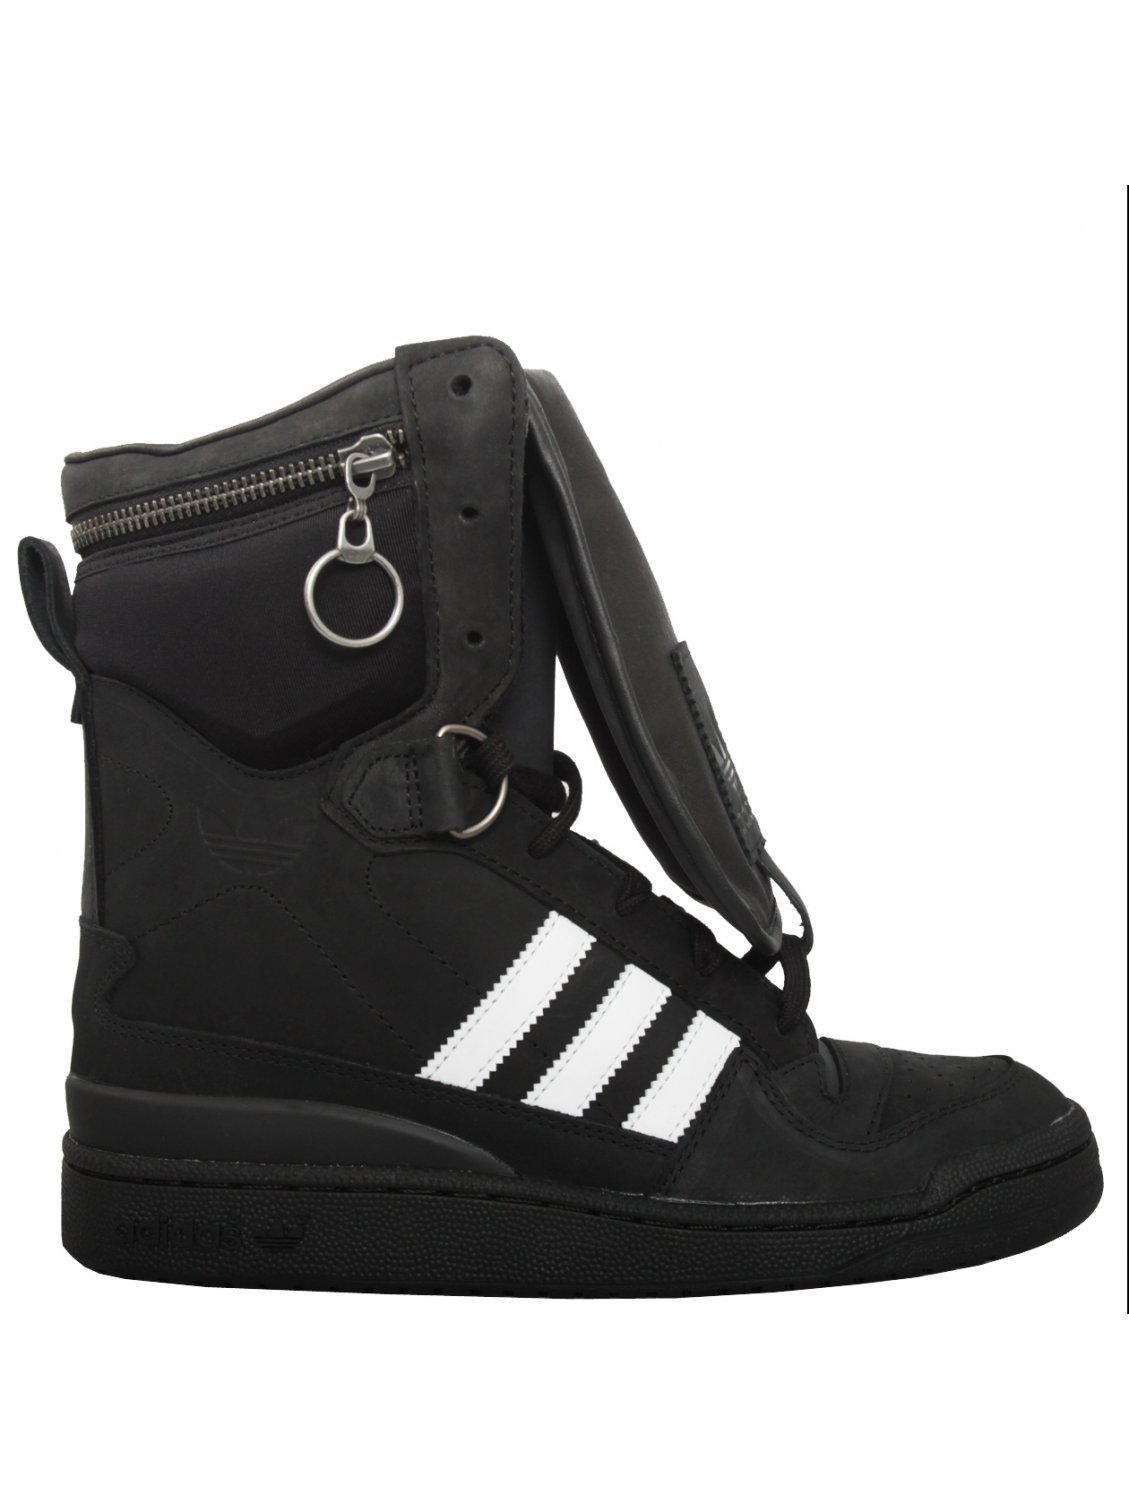 Black Tall Boy Jeremy Scott For Adidas Tall Boy High Sneakers Black In